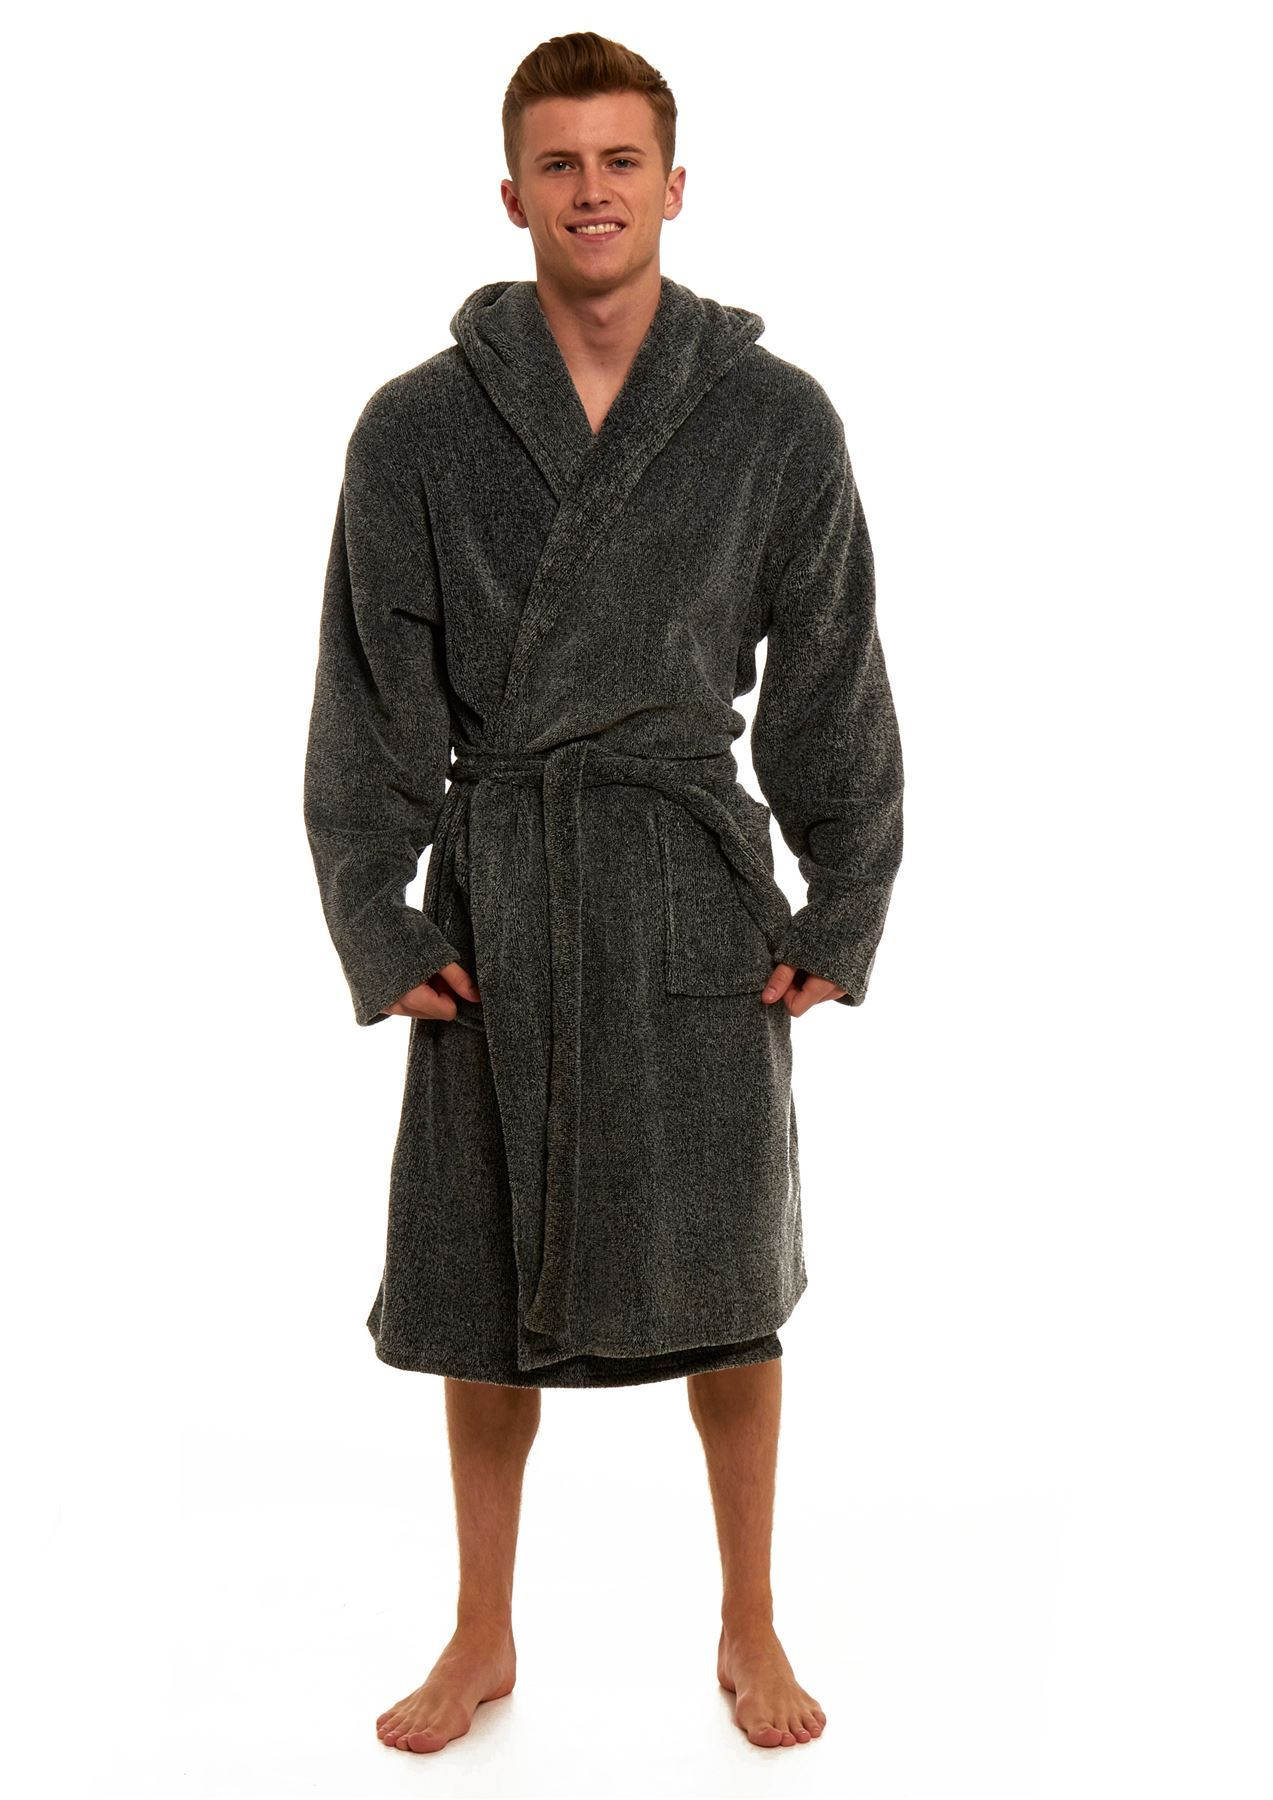 Men\'s Twisted Yarn Black Hooded Robe, Warm Fleece Dressing Gown Gift ...